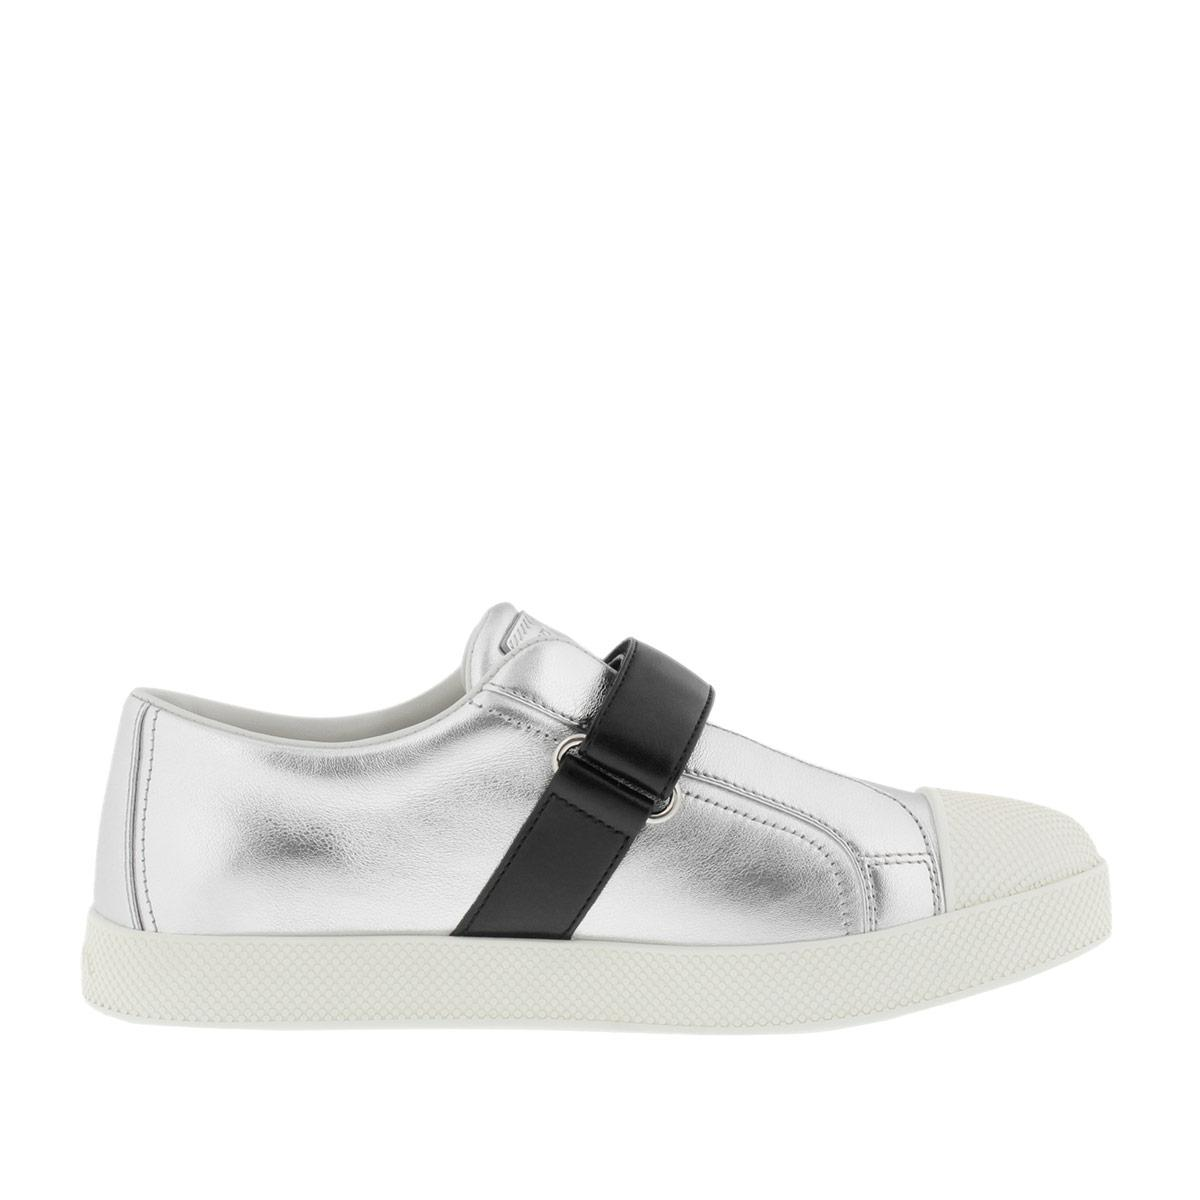 Sneakers - Calzature Donna Vitello Soft Sneaker Black/White - black - Sneakers for ladies Prada